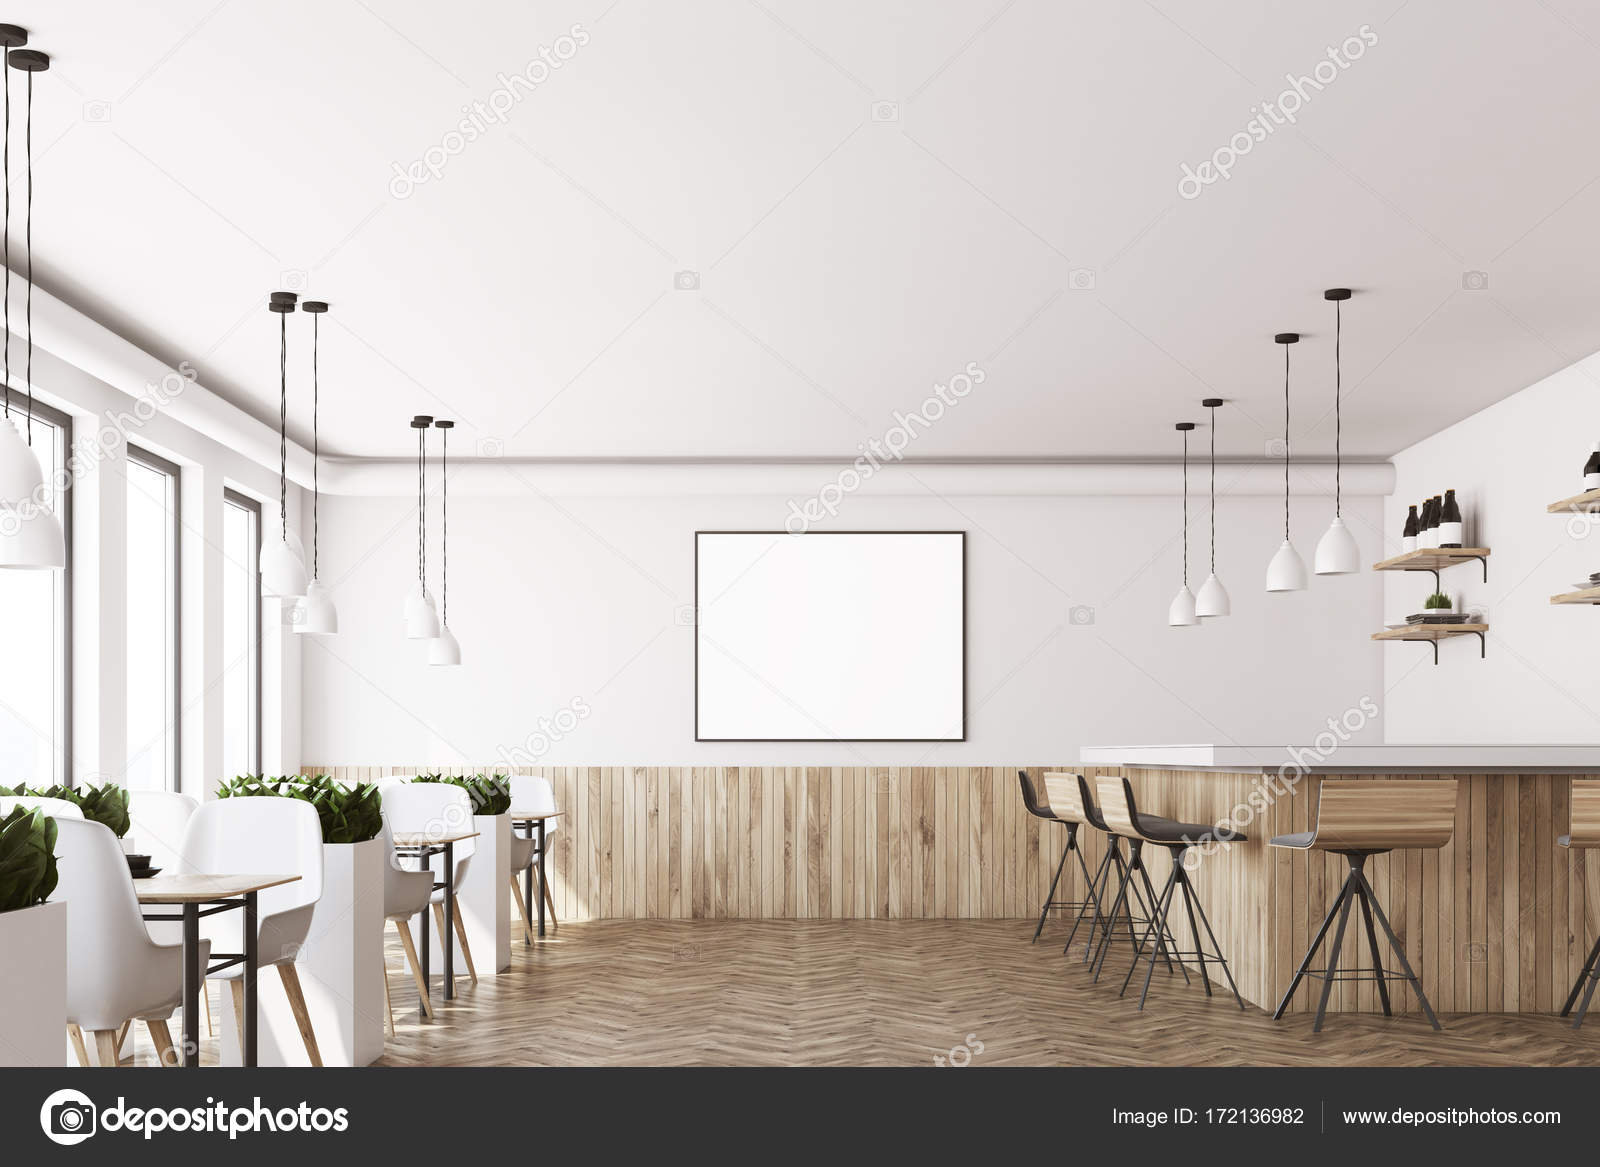 White Cafe Interior Poster Wood Stock Photo